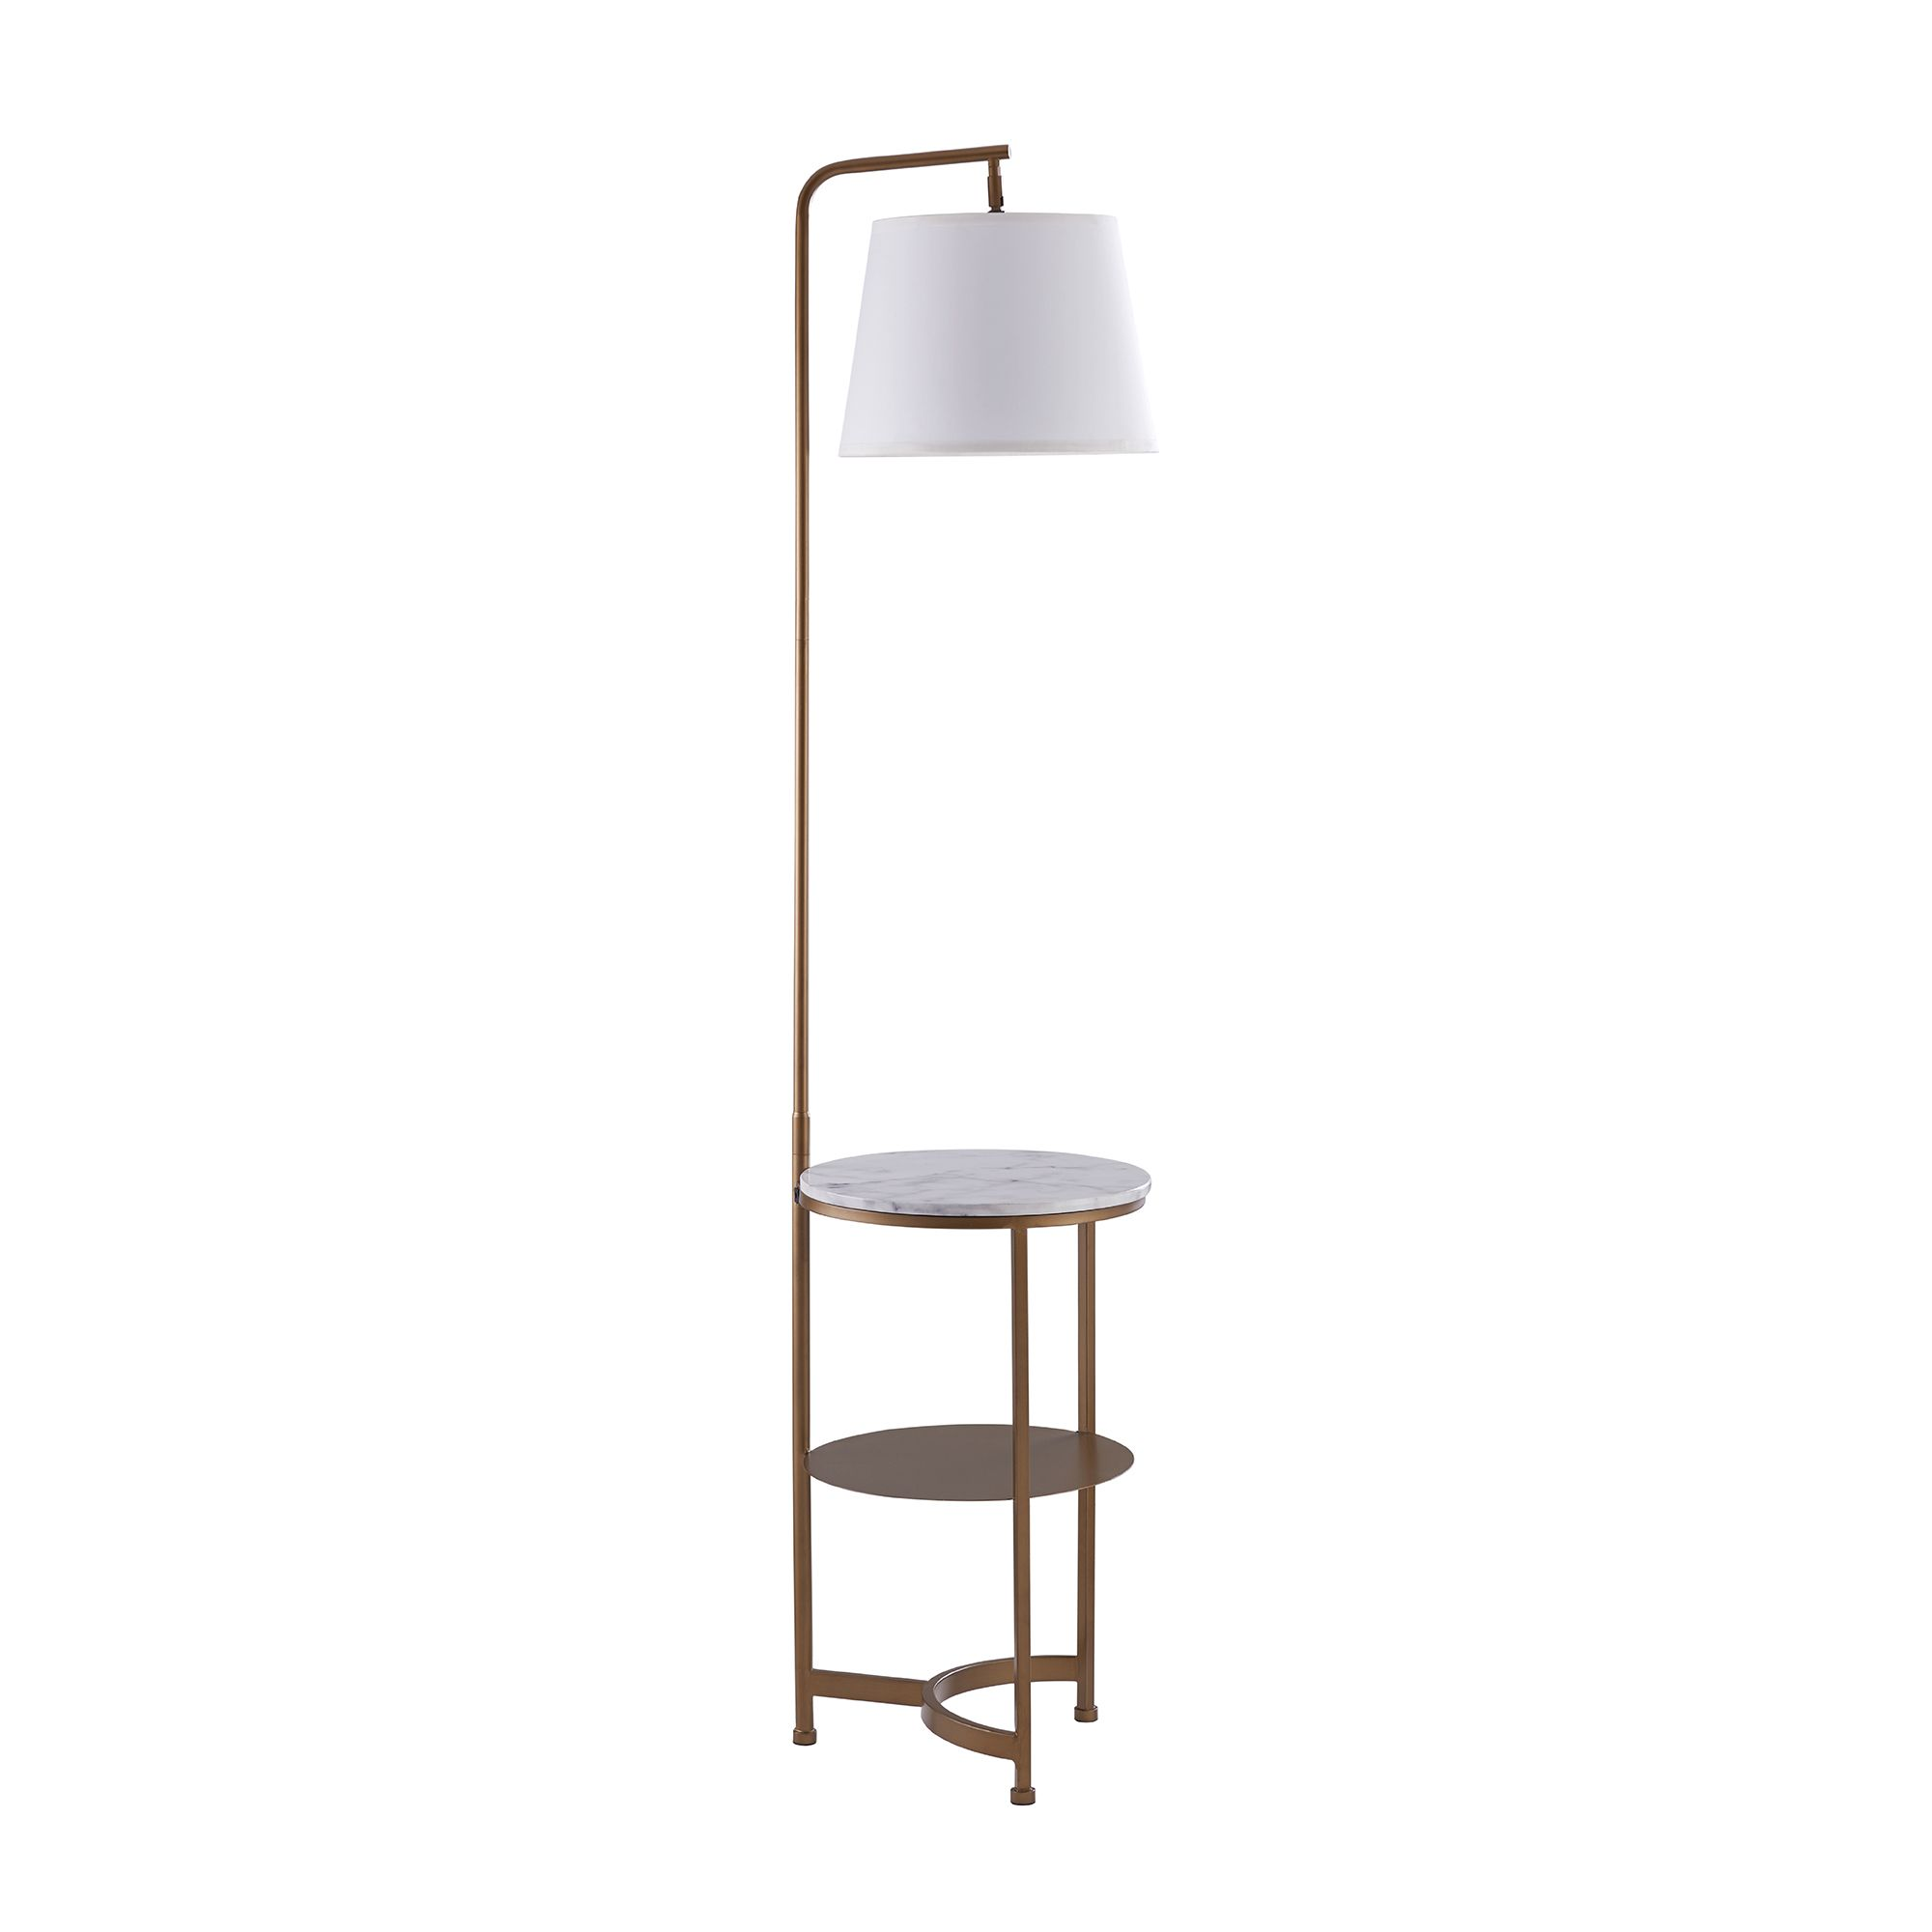 Versanora Lilah Floor Lamp With Usb Port Faux Marble Table And White Shades Walmart Com Gold Floor Lamp Led Floor Lamp Floor Lamp